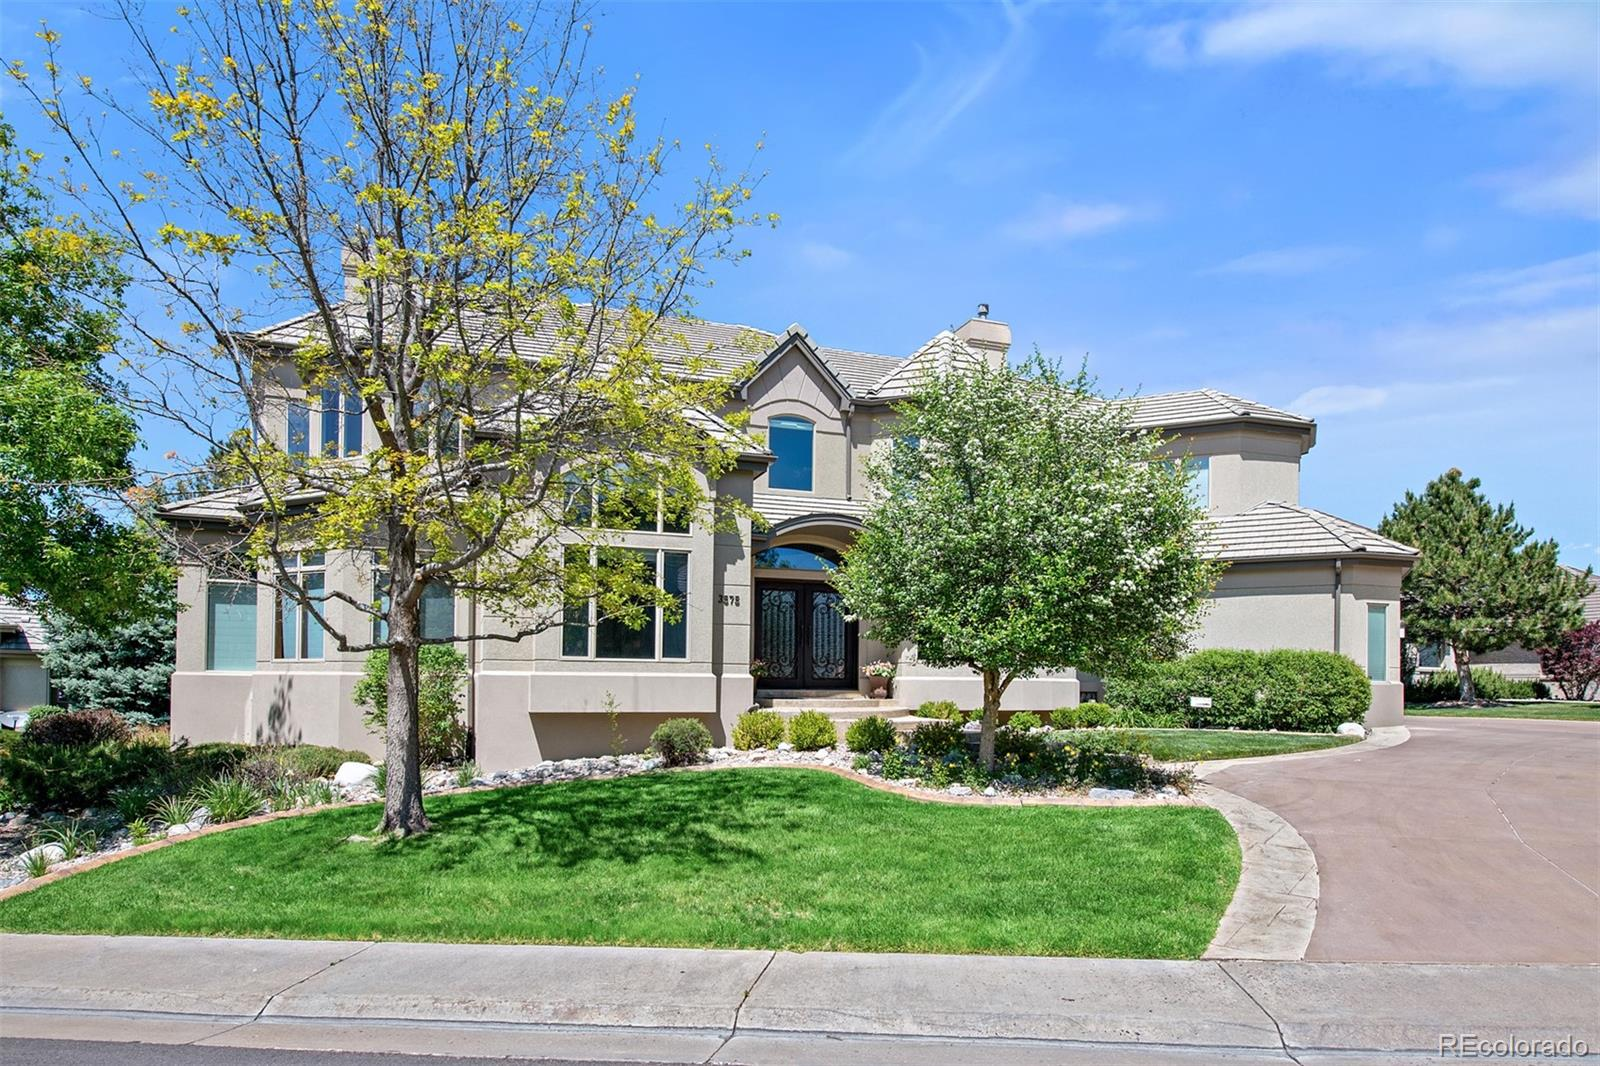 MLS# 7642553 - 3 - 3575 W 110th Place, Westminster, CO 80031